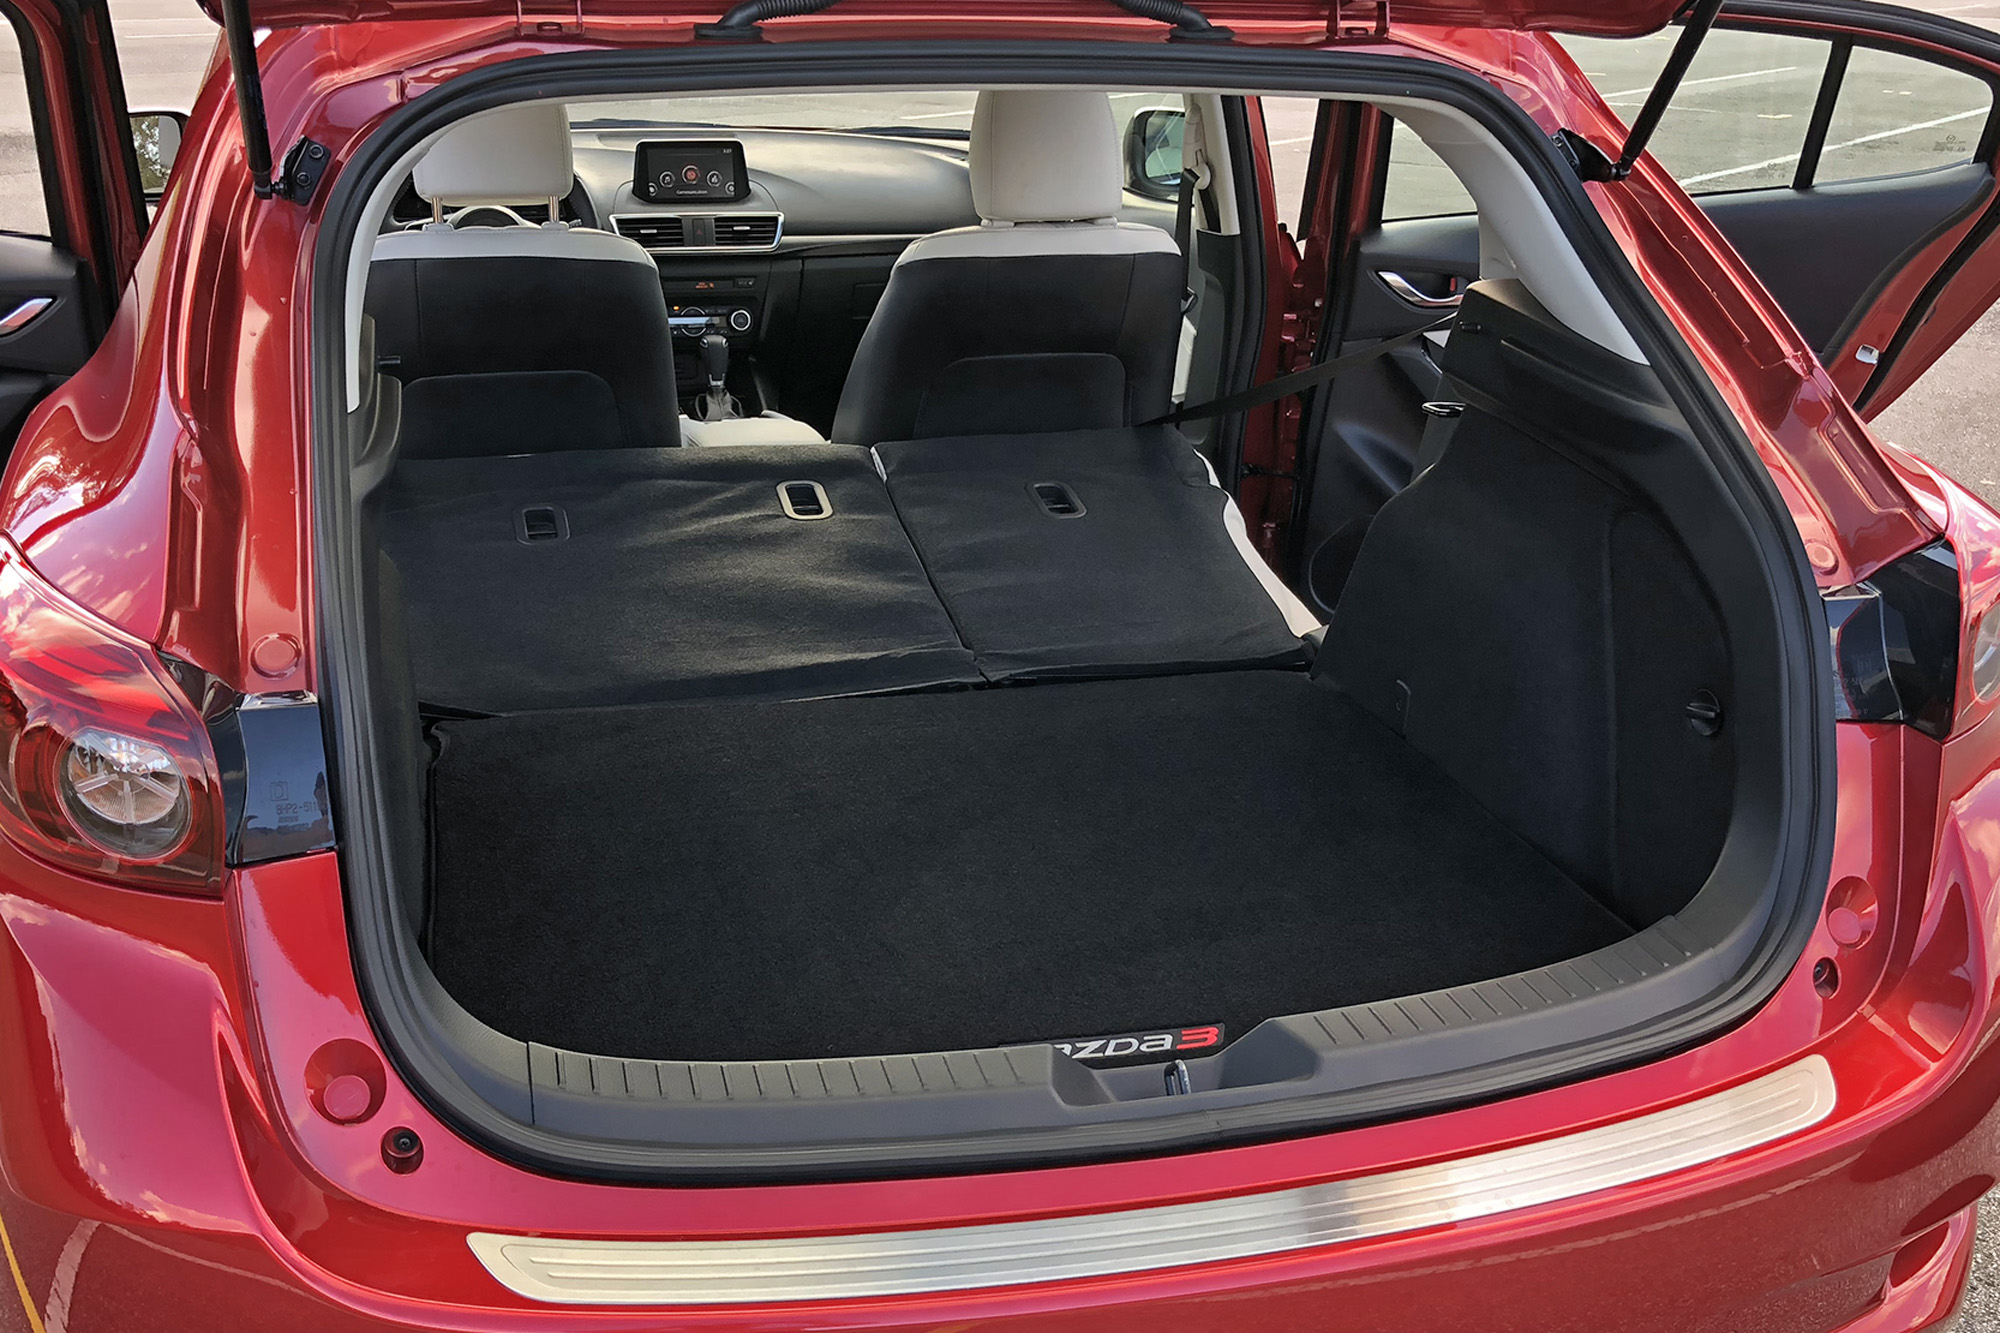 Does The Mazda3 5 Door Make A Good Daily Driver For The Family